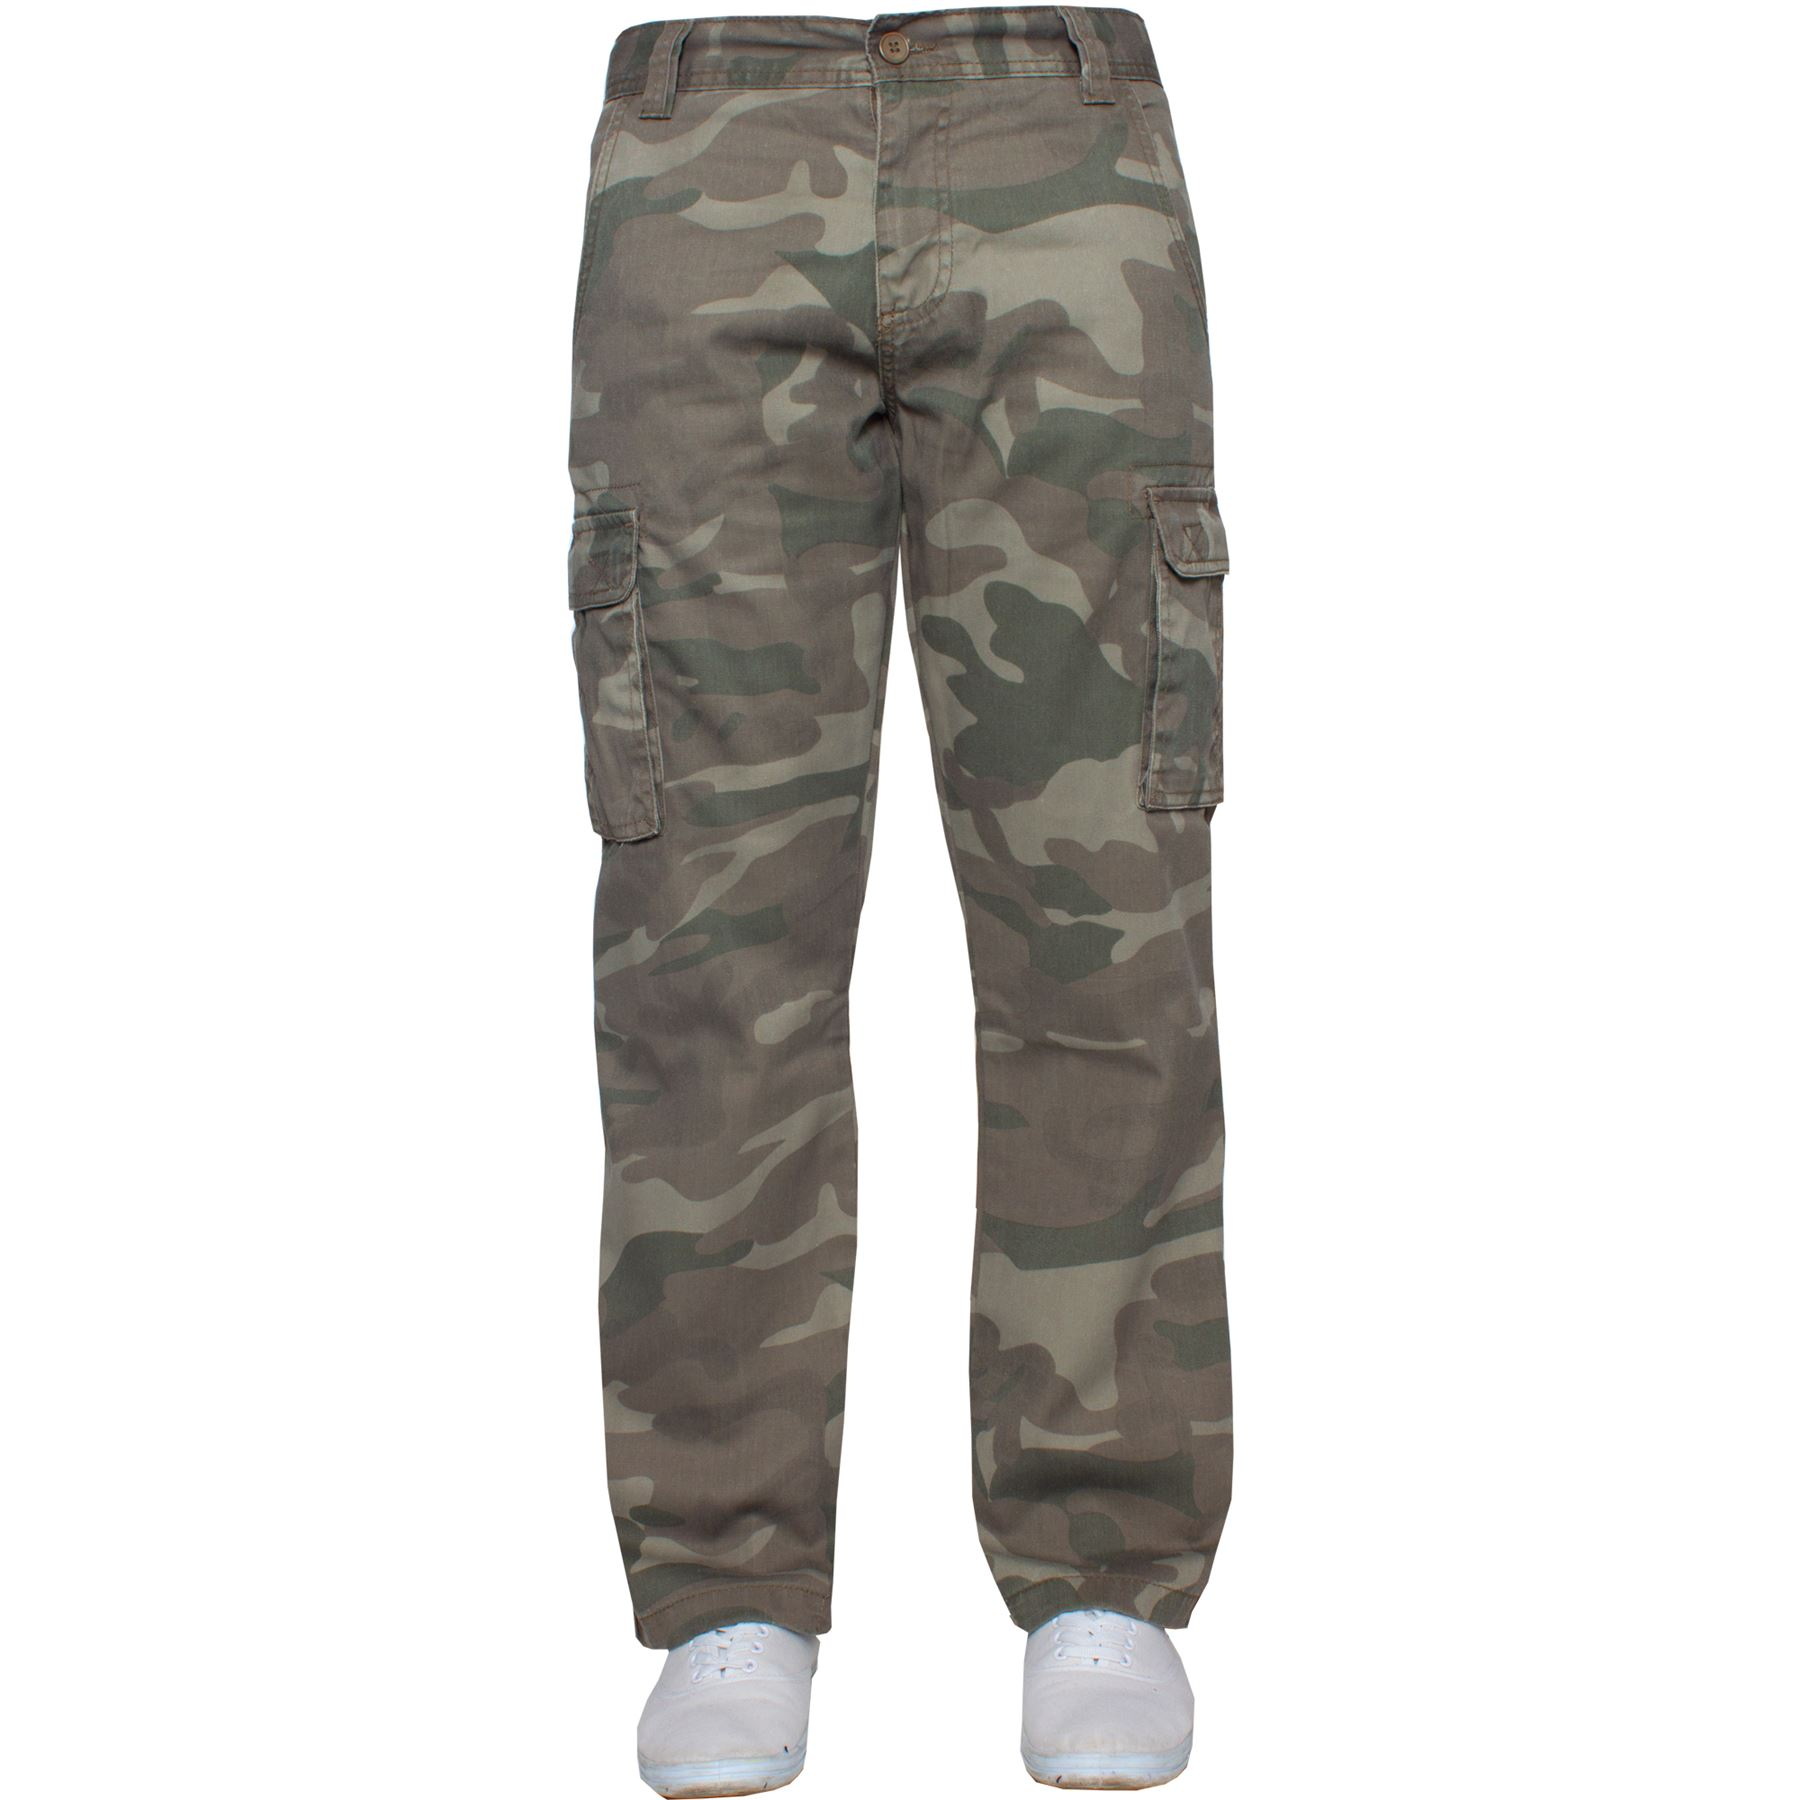 Kruze-Mens-Military-Combat-Trousers-Camouflage-Cargo-Camo-Army-Casual-Work-Pants thumbnail 28